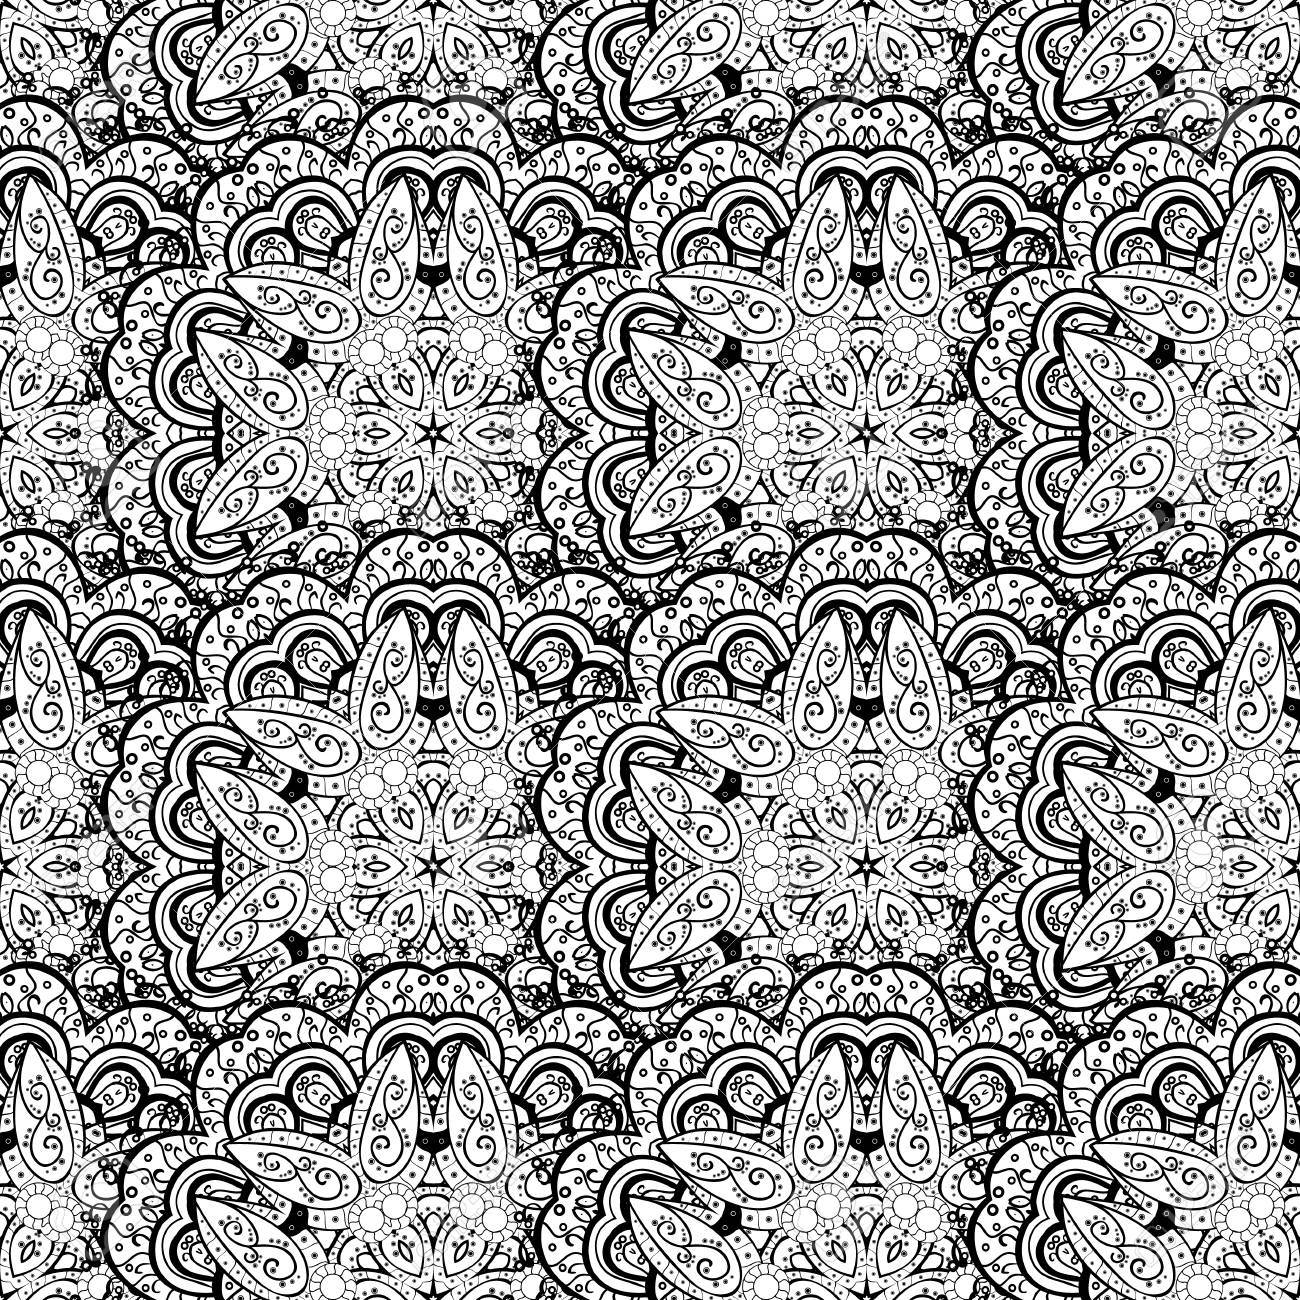 Seamless medieval floral royal pattern vector illustration seamless medieval floral royal pattern vector illustration decorative symmetry arabesque good for greeting stopboris